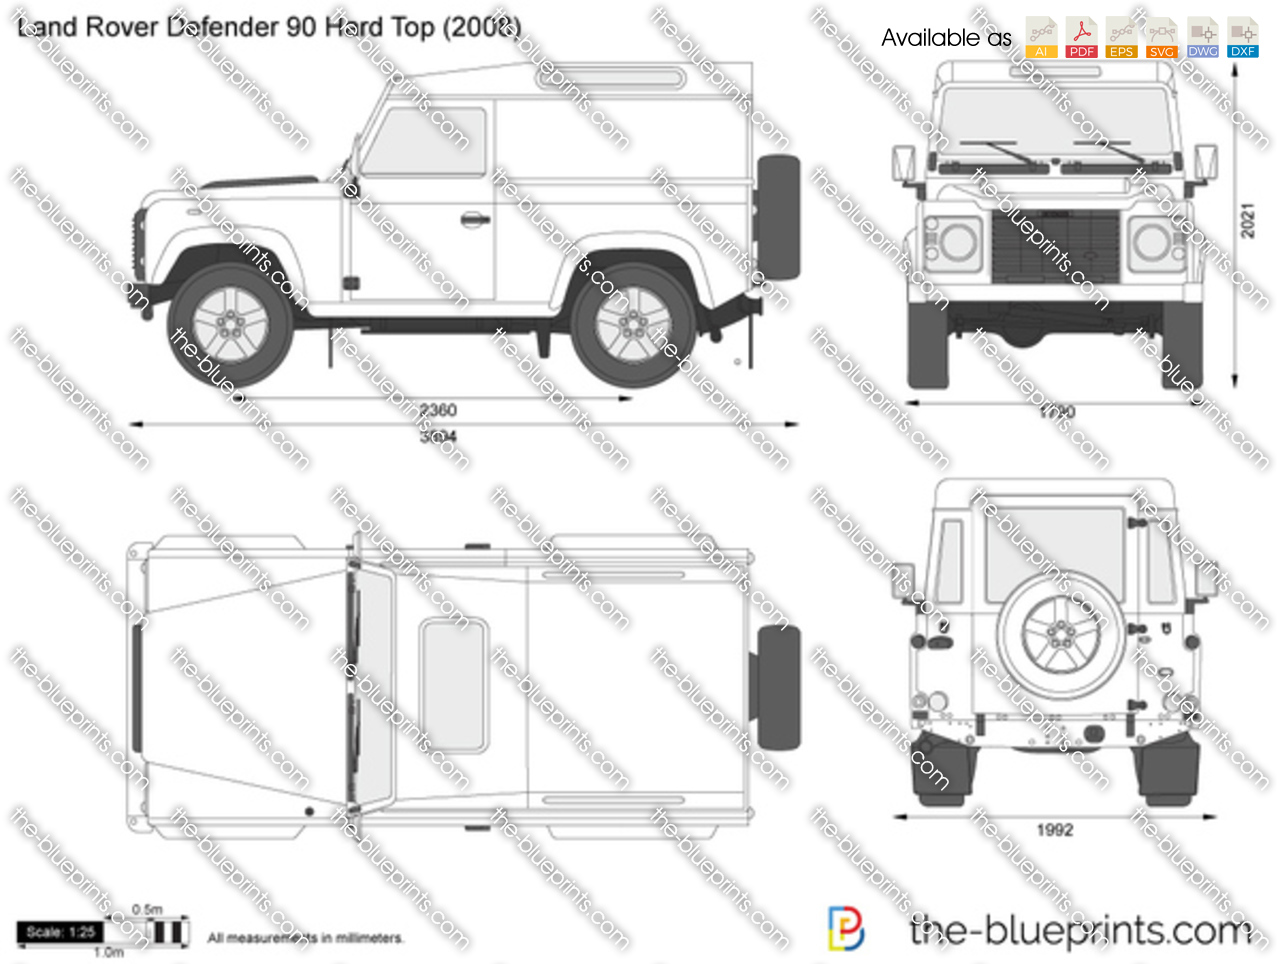 Land Rover Defender 90 Hard Top 2018